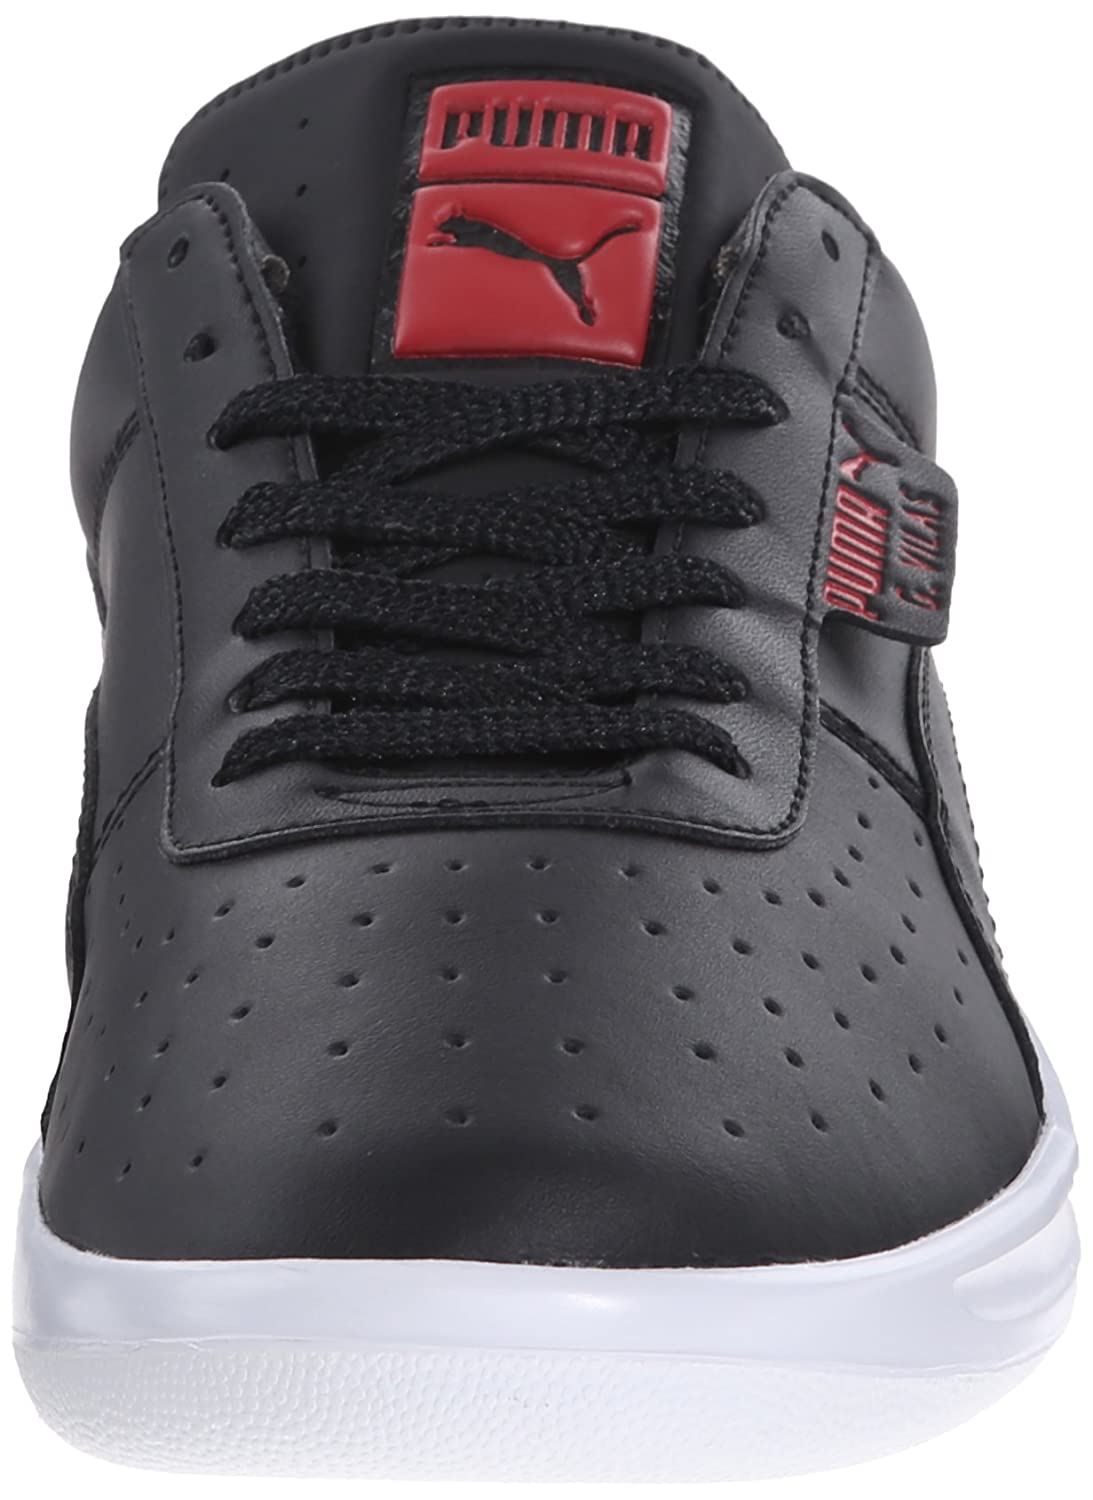 【PUMA】 PUMA图片PUMA价格PUMA Men's G. Vilas L2 Icon athletic, Black/High Risk Red,  7.5 D US - 亚马逊中国